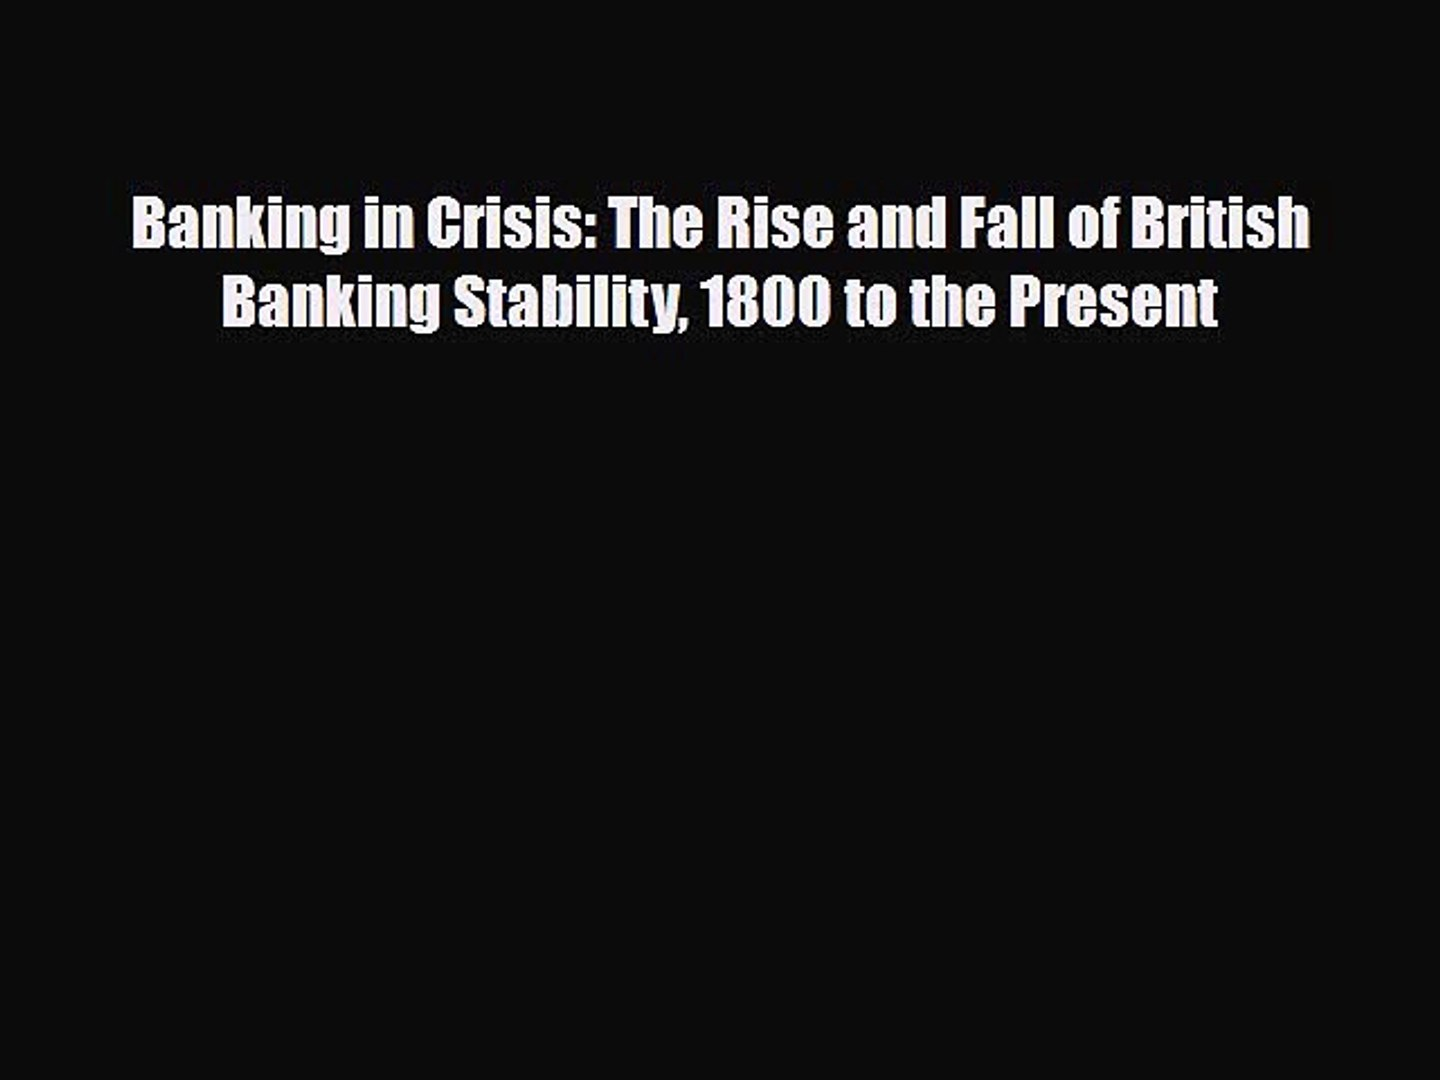 [PDF] Banking in Crisis: The Rise and Fall of British Banking Stability 1800 to the Present